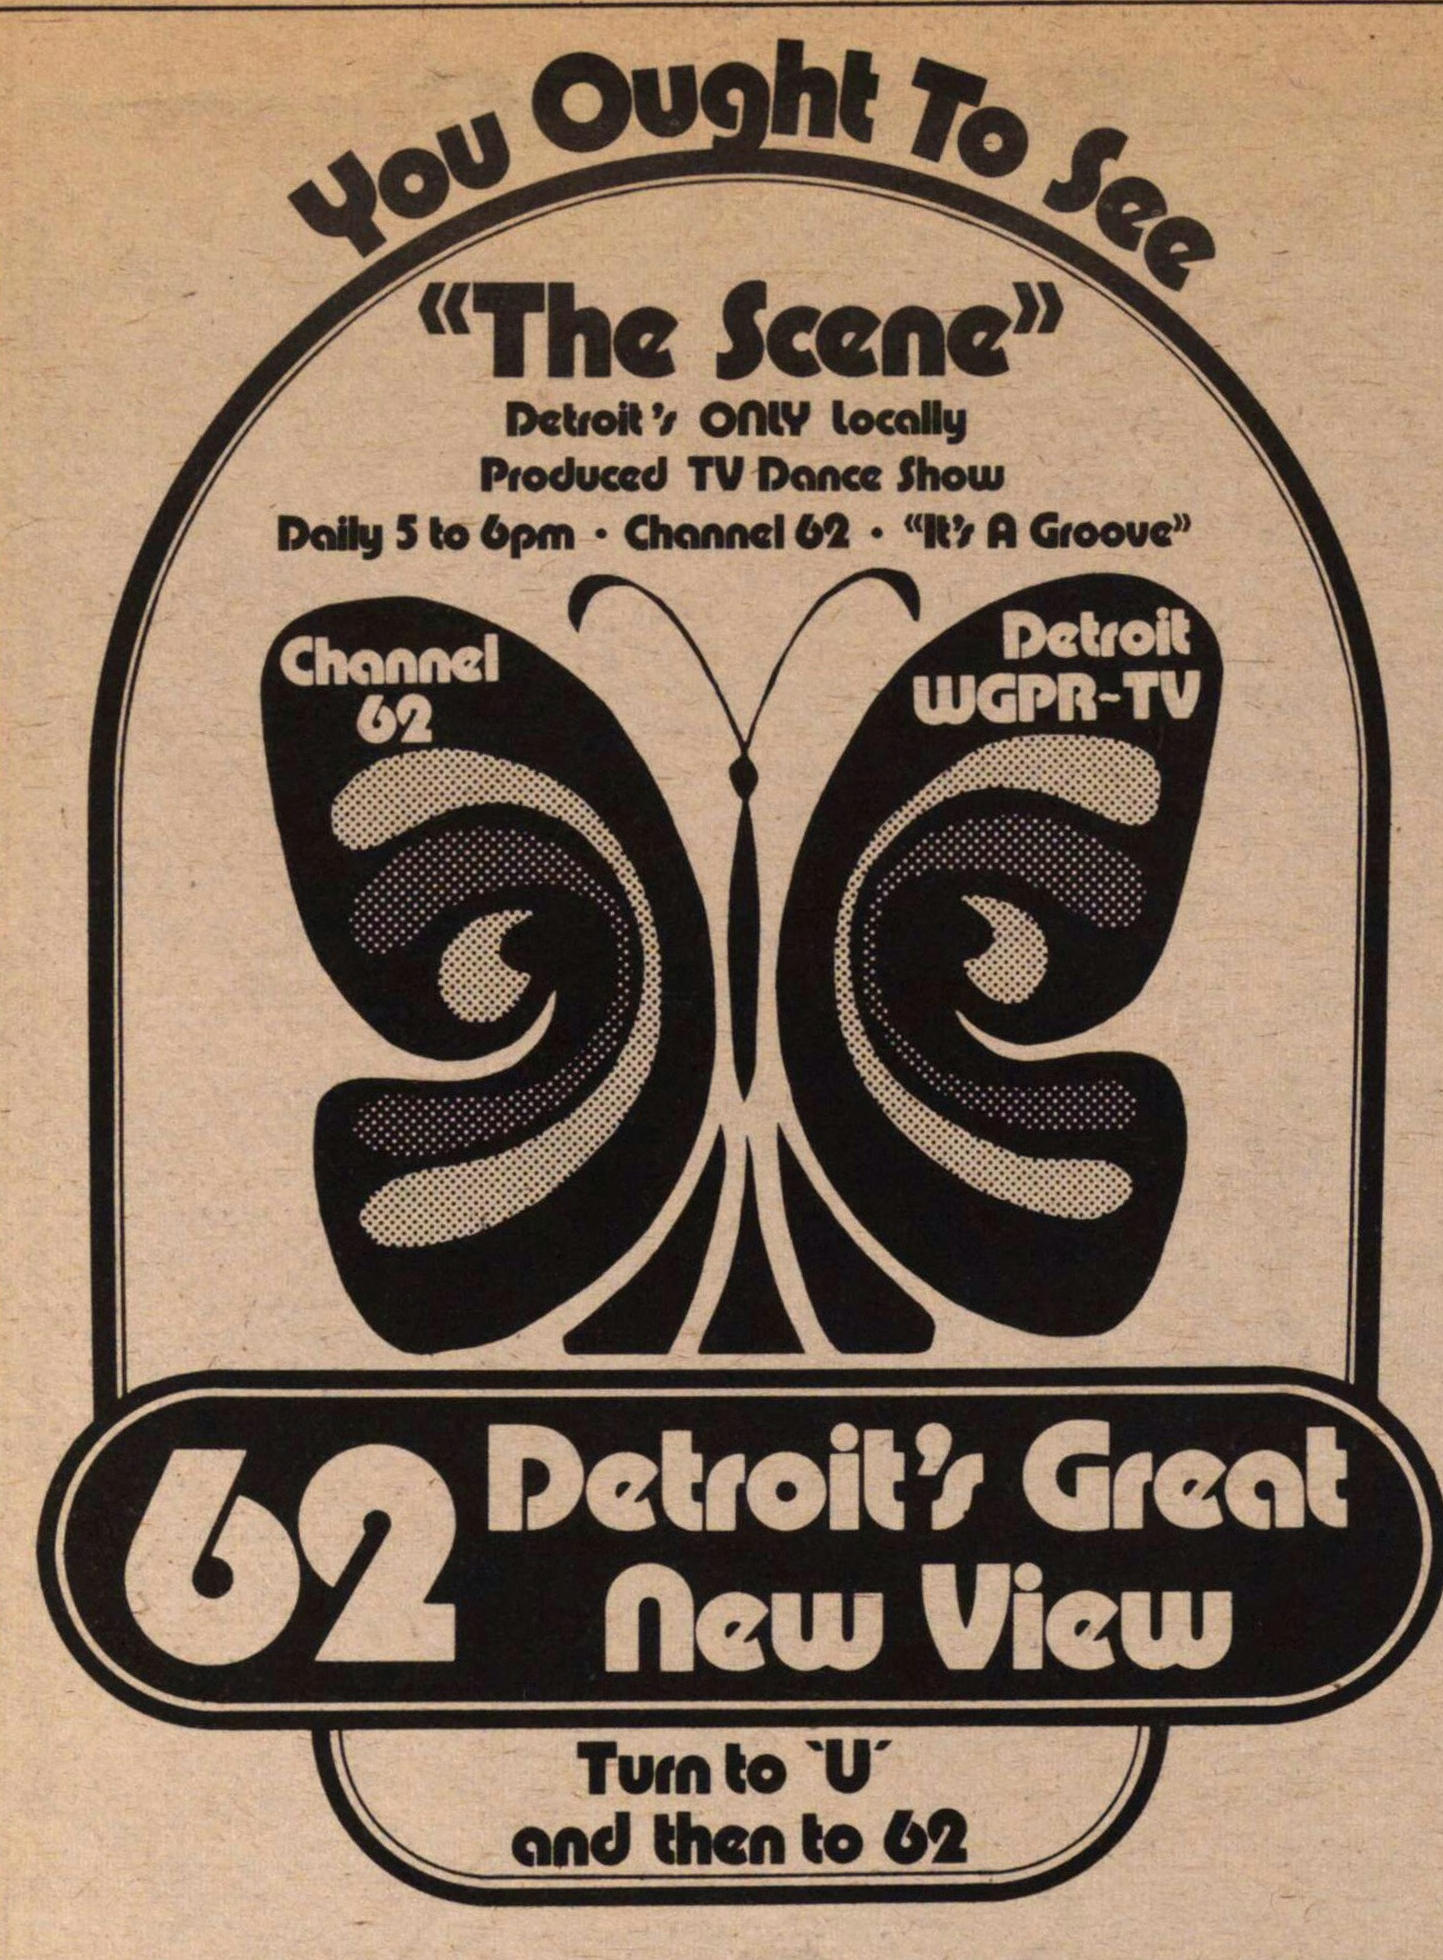 62 Detroit's Great New View image